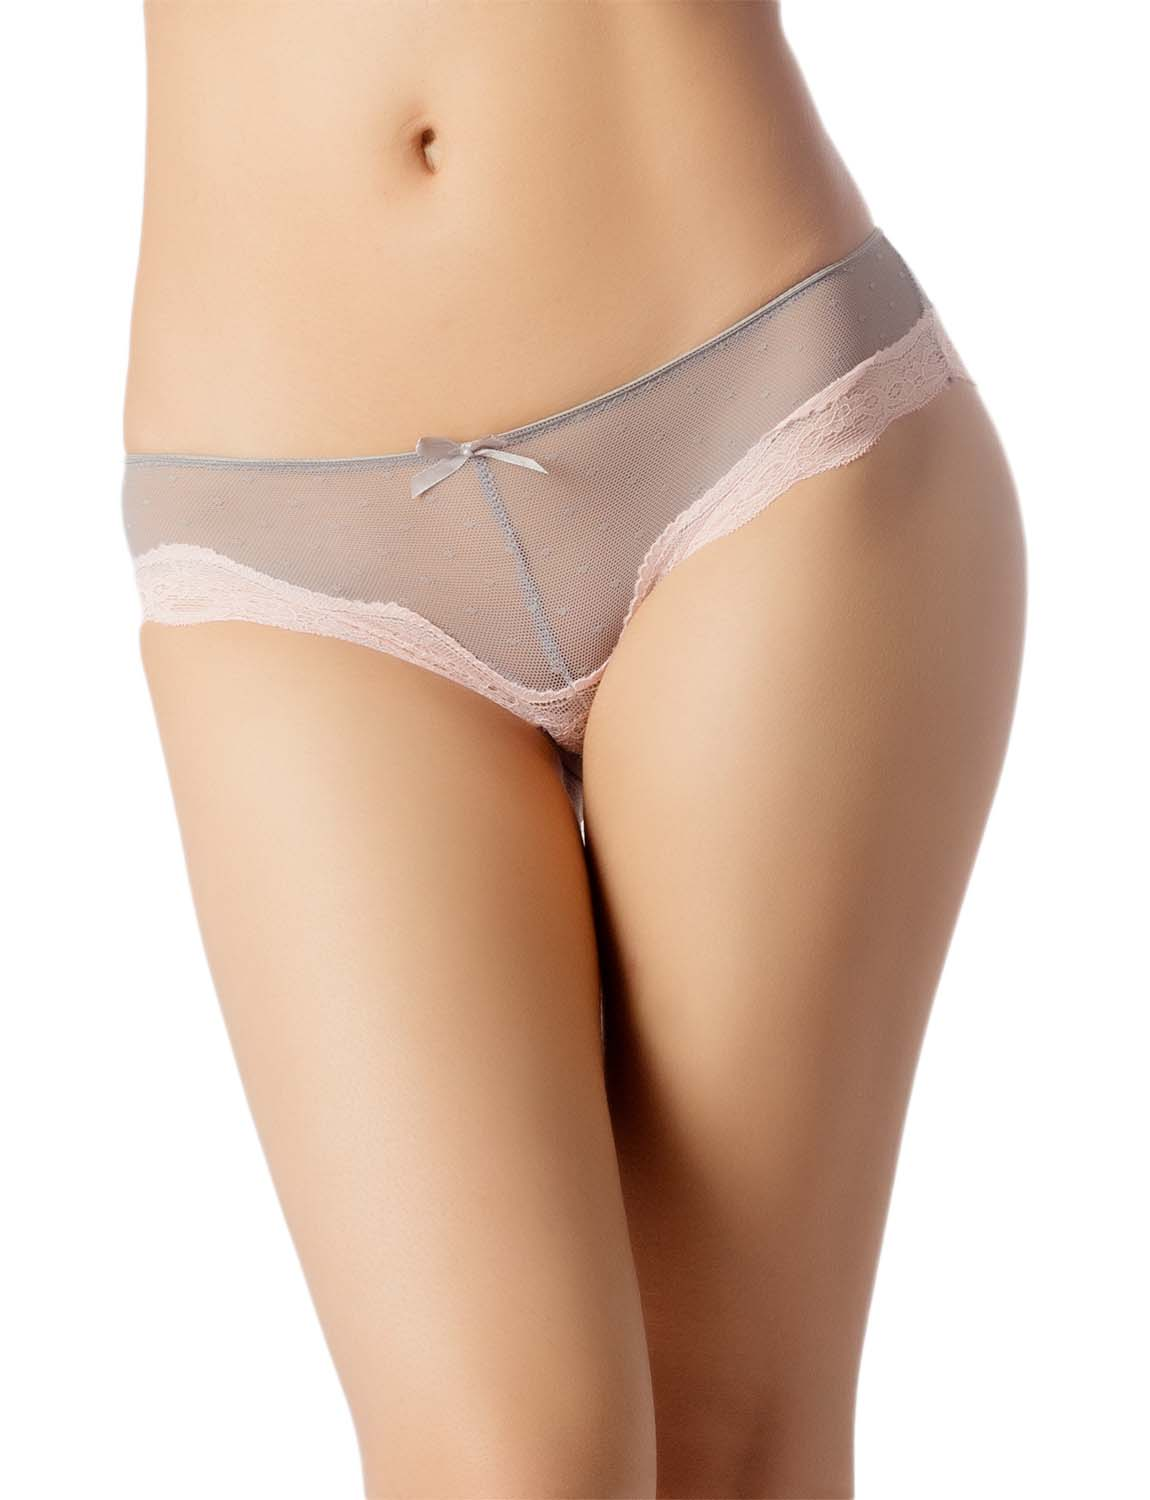 Women's Lace See-Through Mesh Breathable Underwear Low Rise Hipster Panty, Size: L, Light Grey